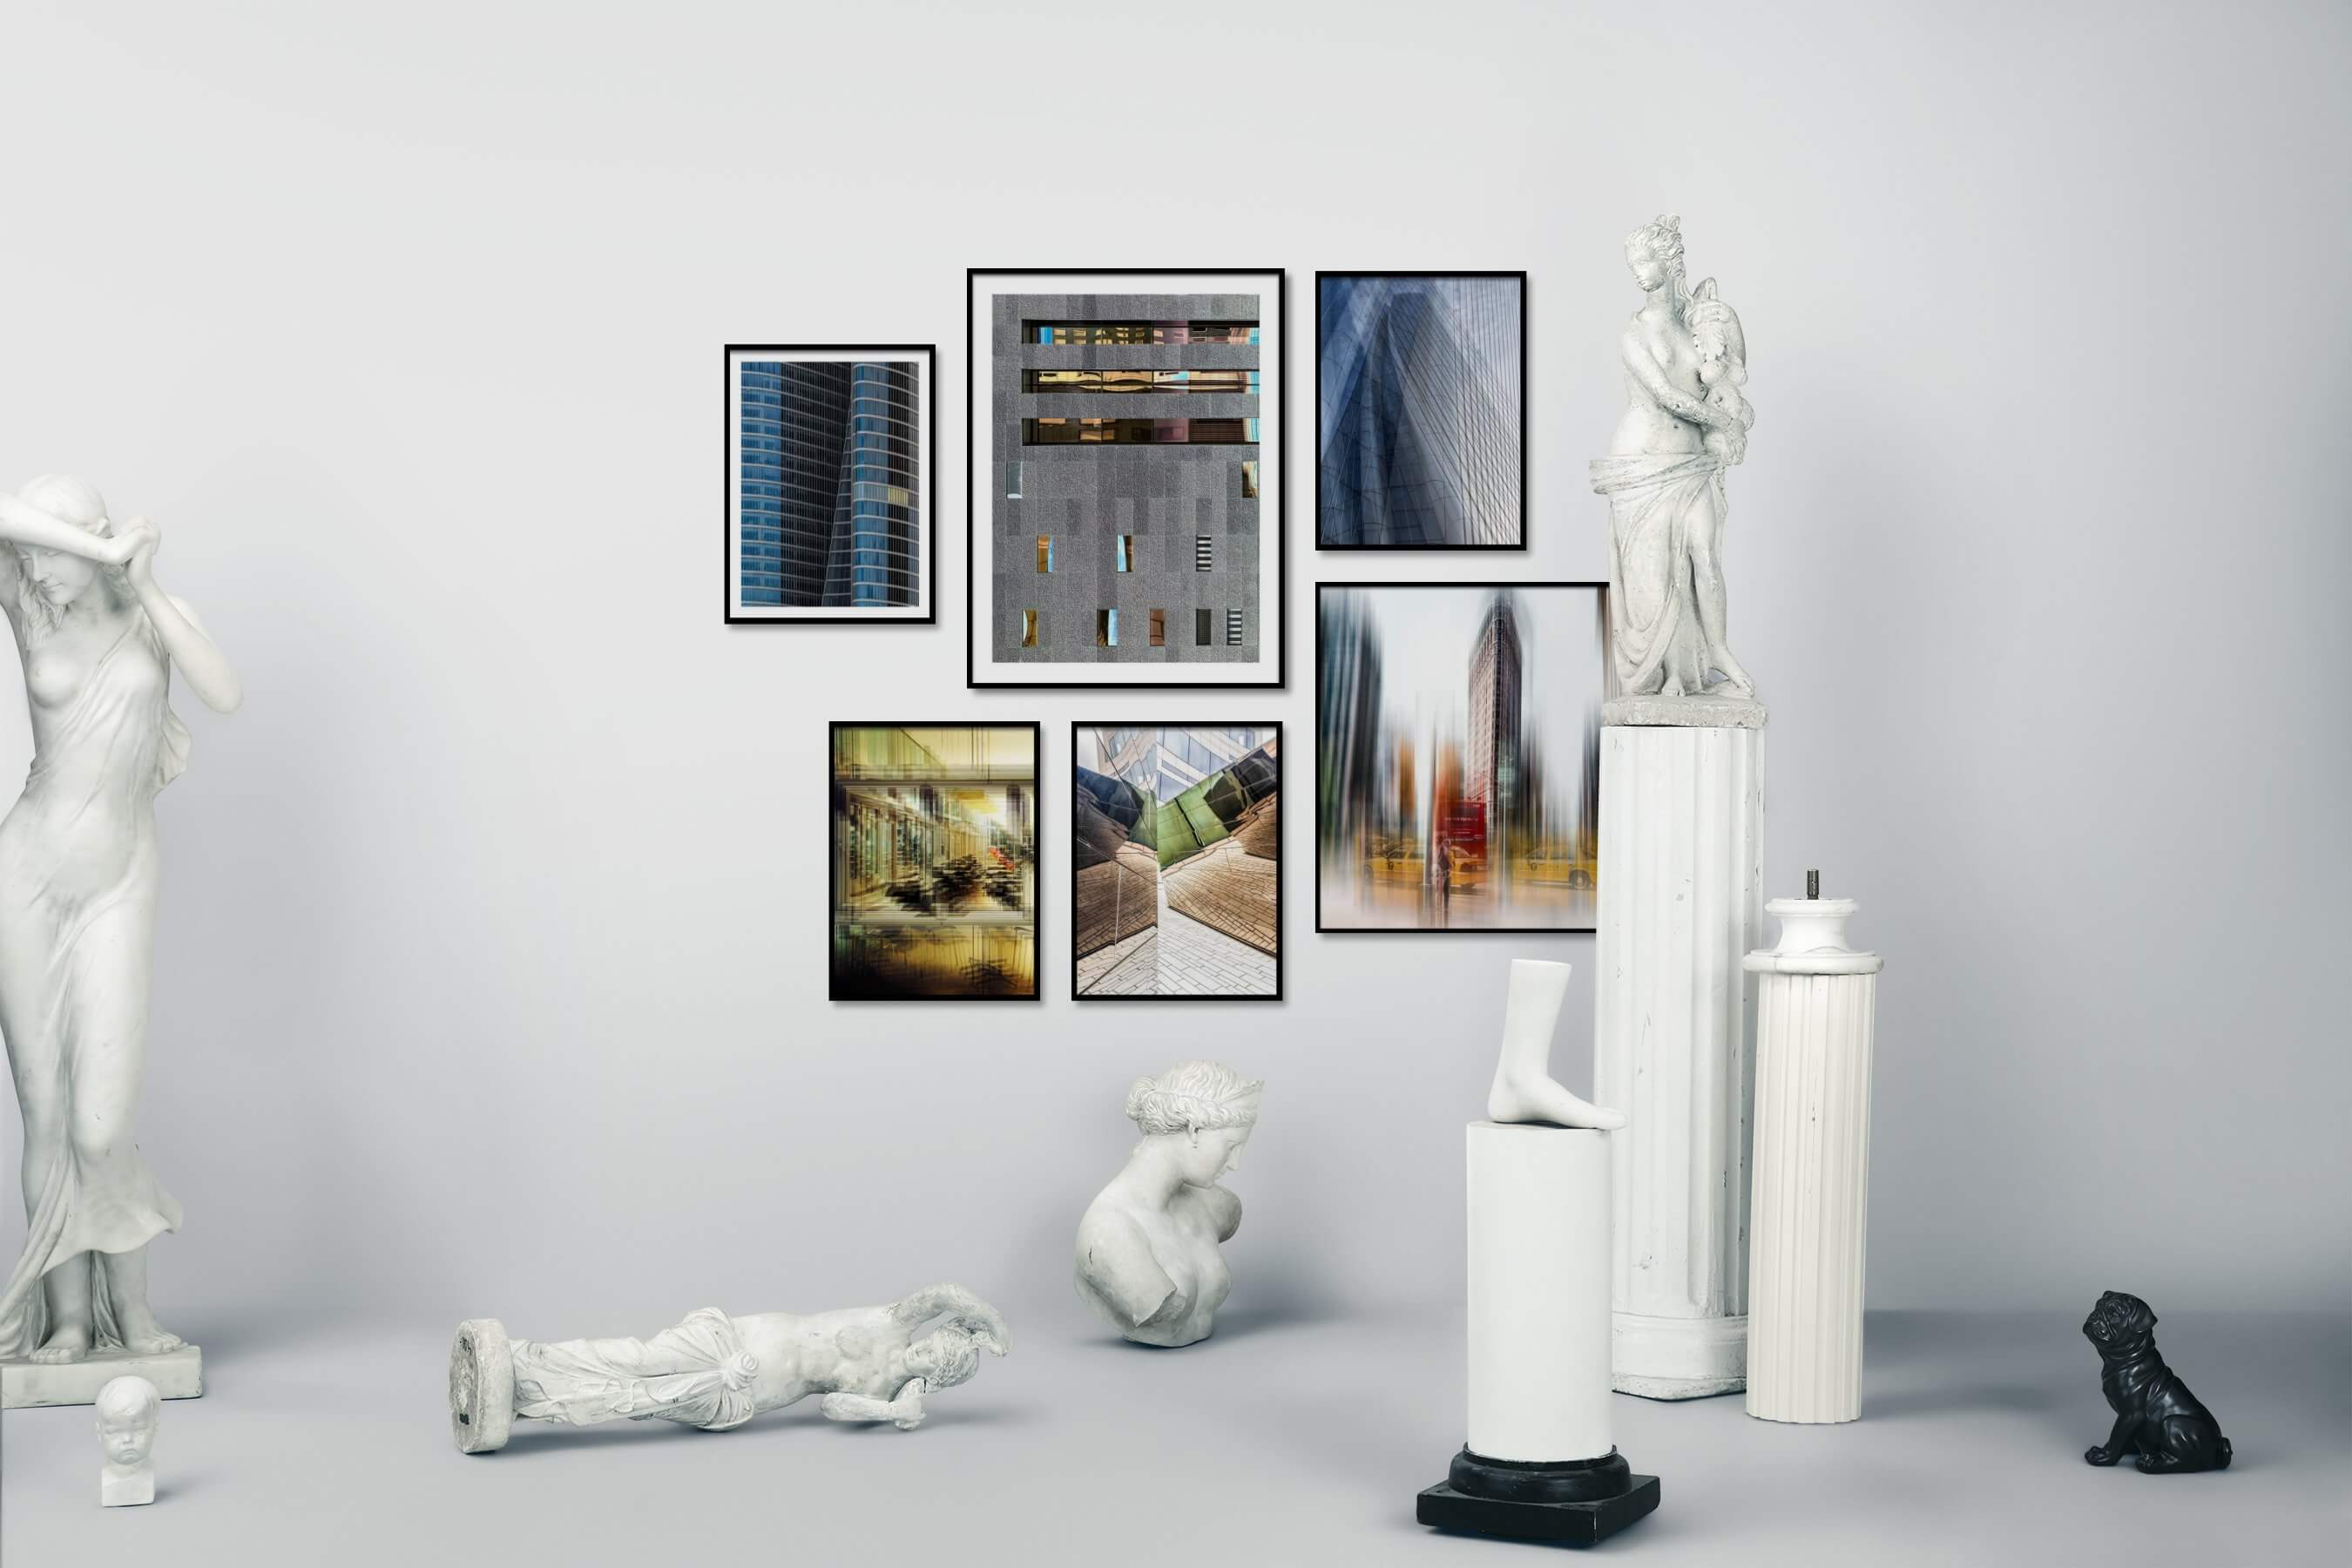 Gallery wall idea with six framed pictures arranged on a wall depicting For the Moderate, City Life, For the Maximalist, and Americana